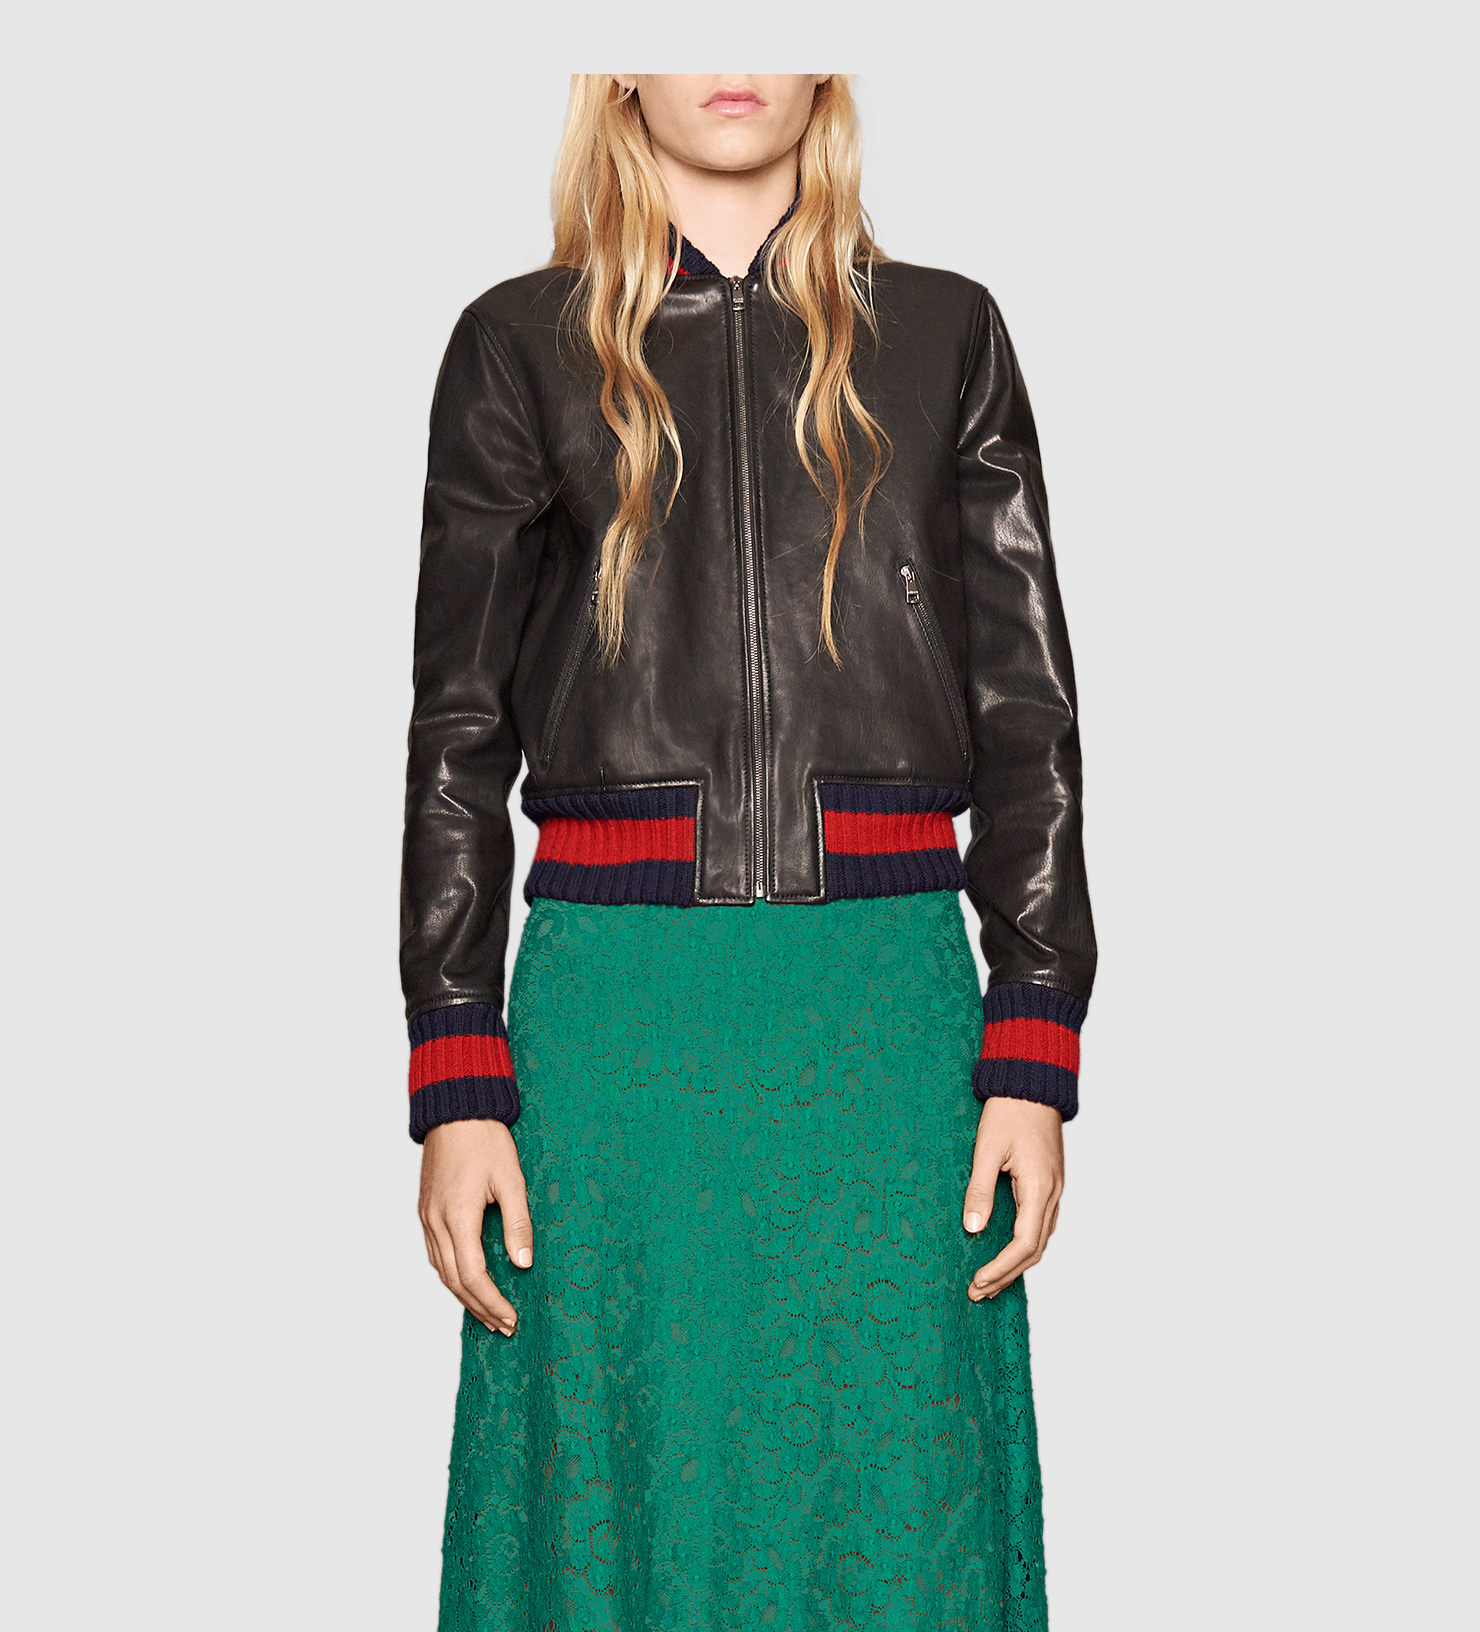 Gucci Embroidered Leather Bomber Jacket in Green - Lyst 223d1bac98f2